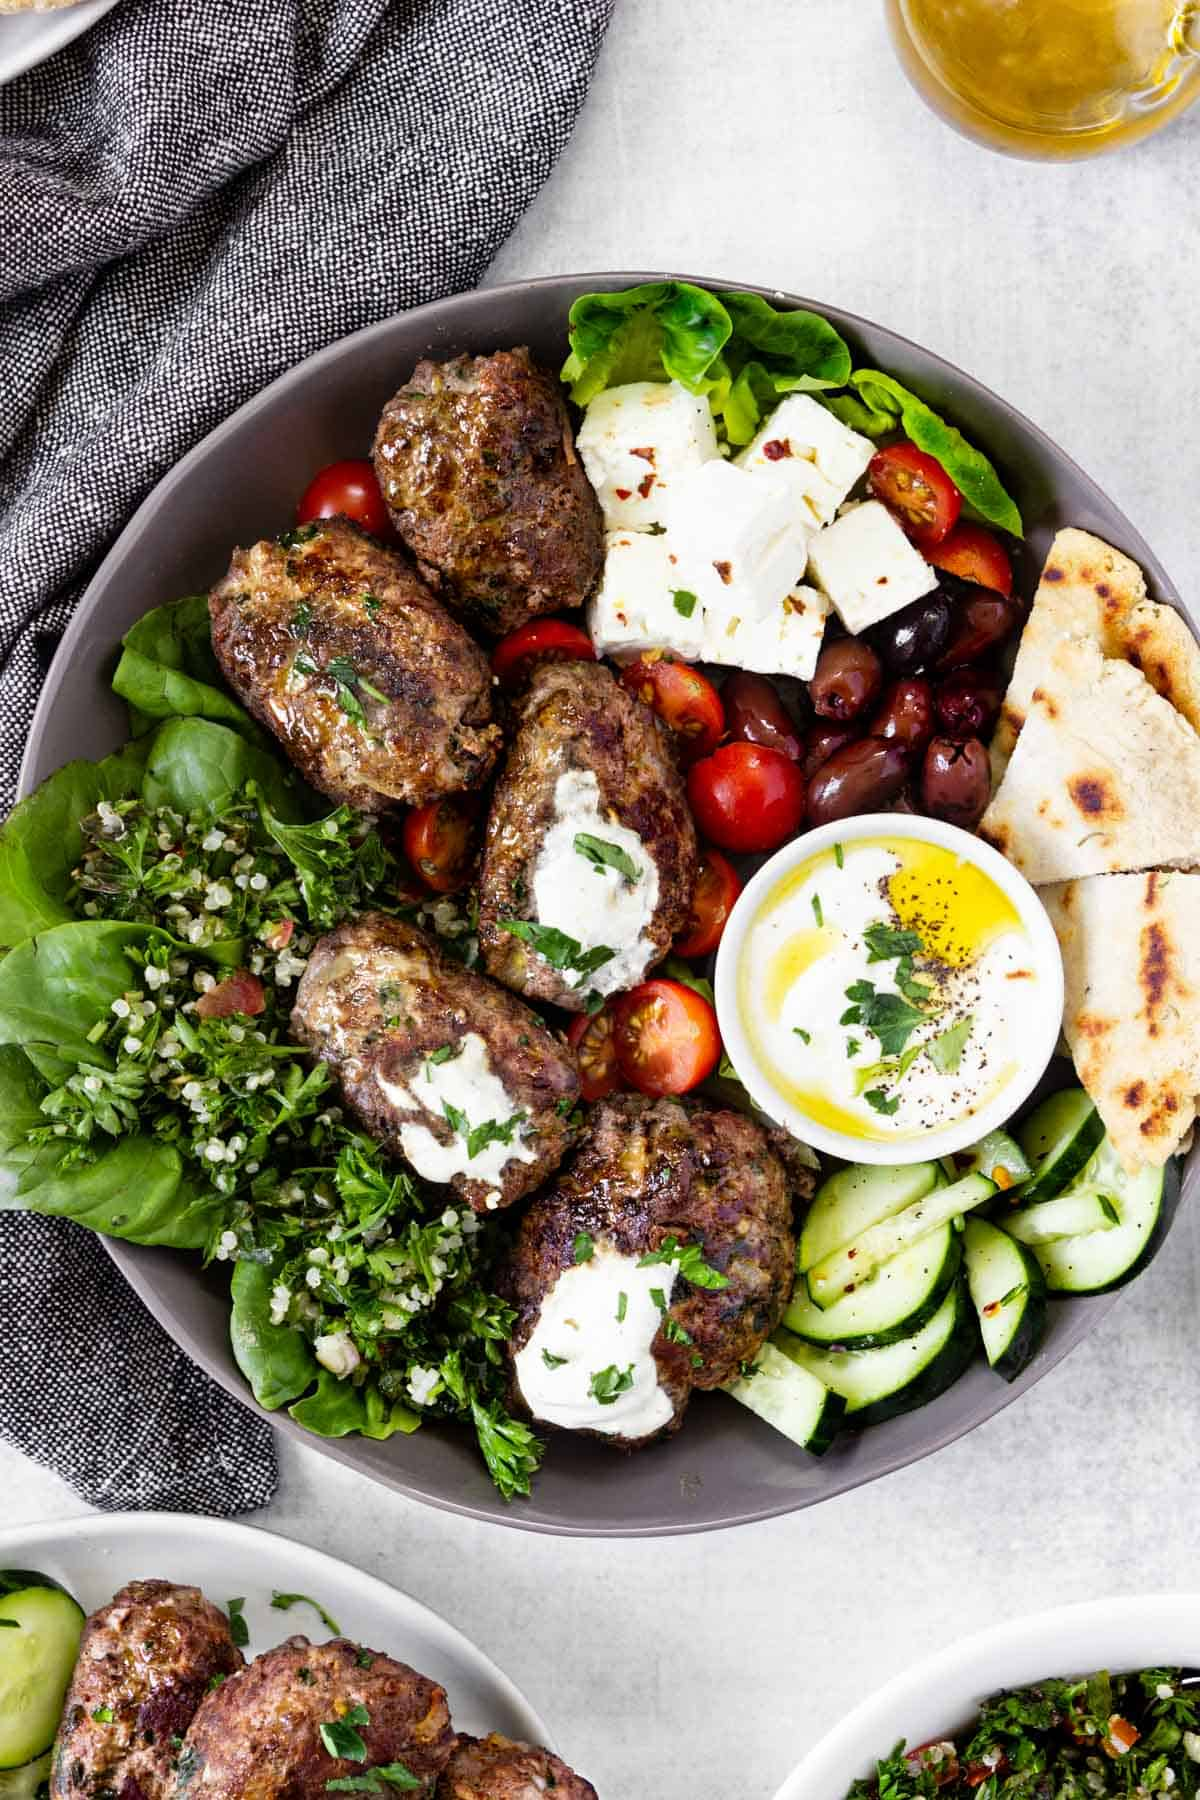 A Mediterranean meal with beef koftas is served on a grey dish.